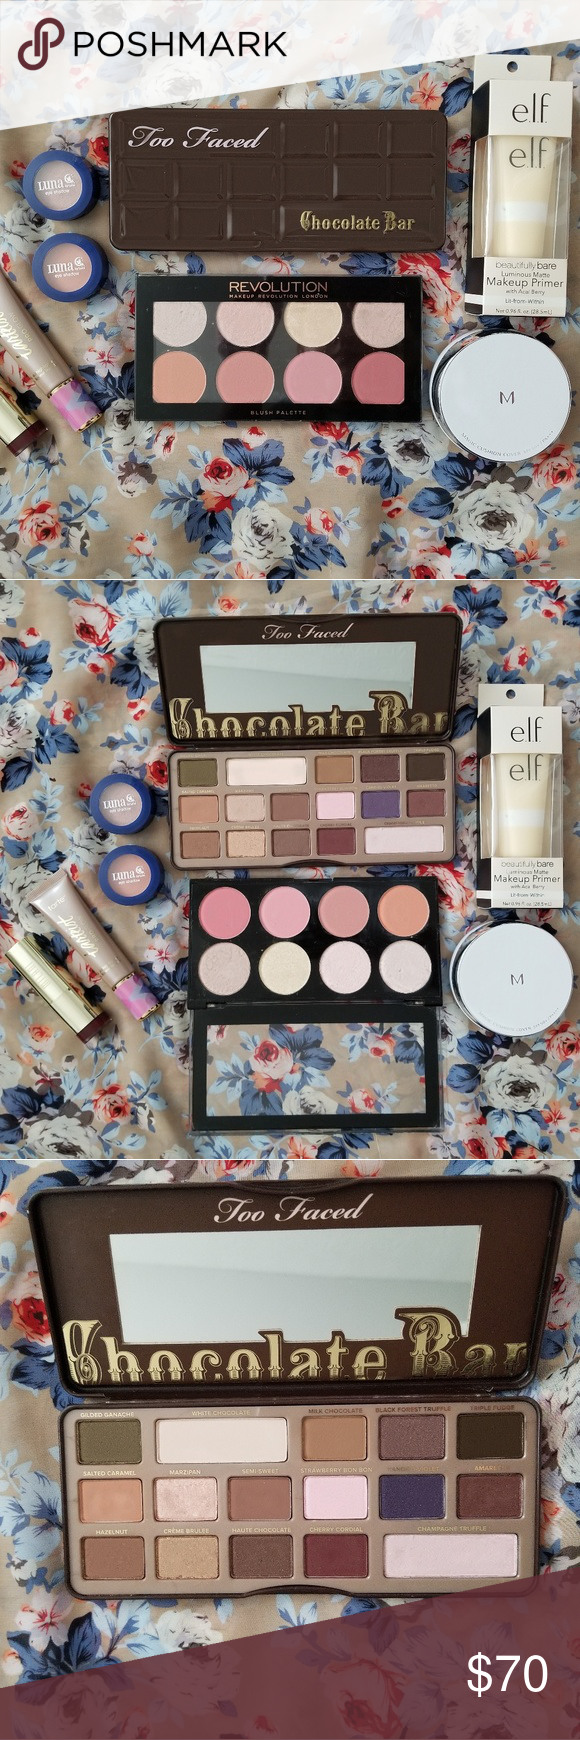 Too Faced Chocolate Bar Palette Package Full face of